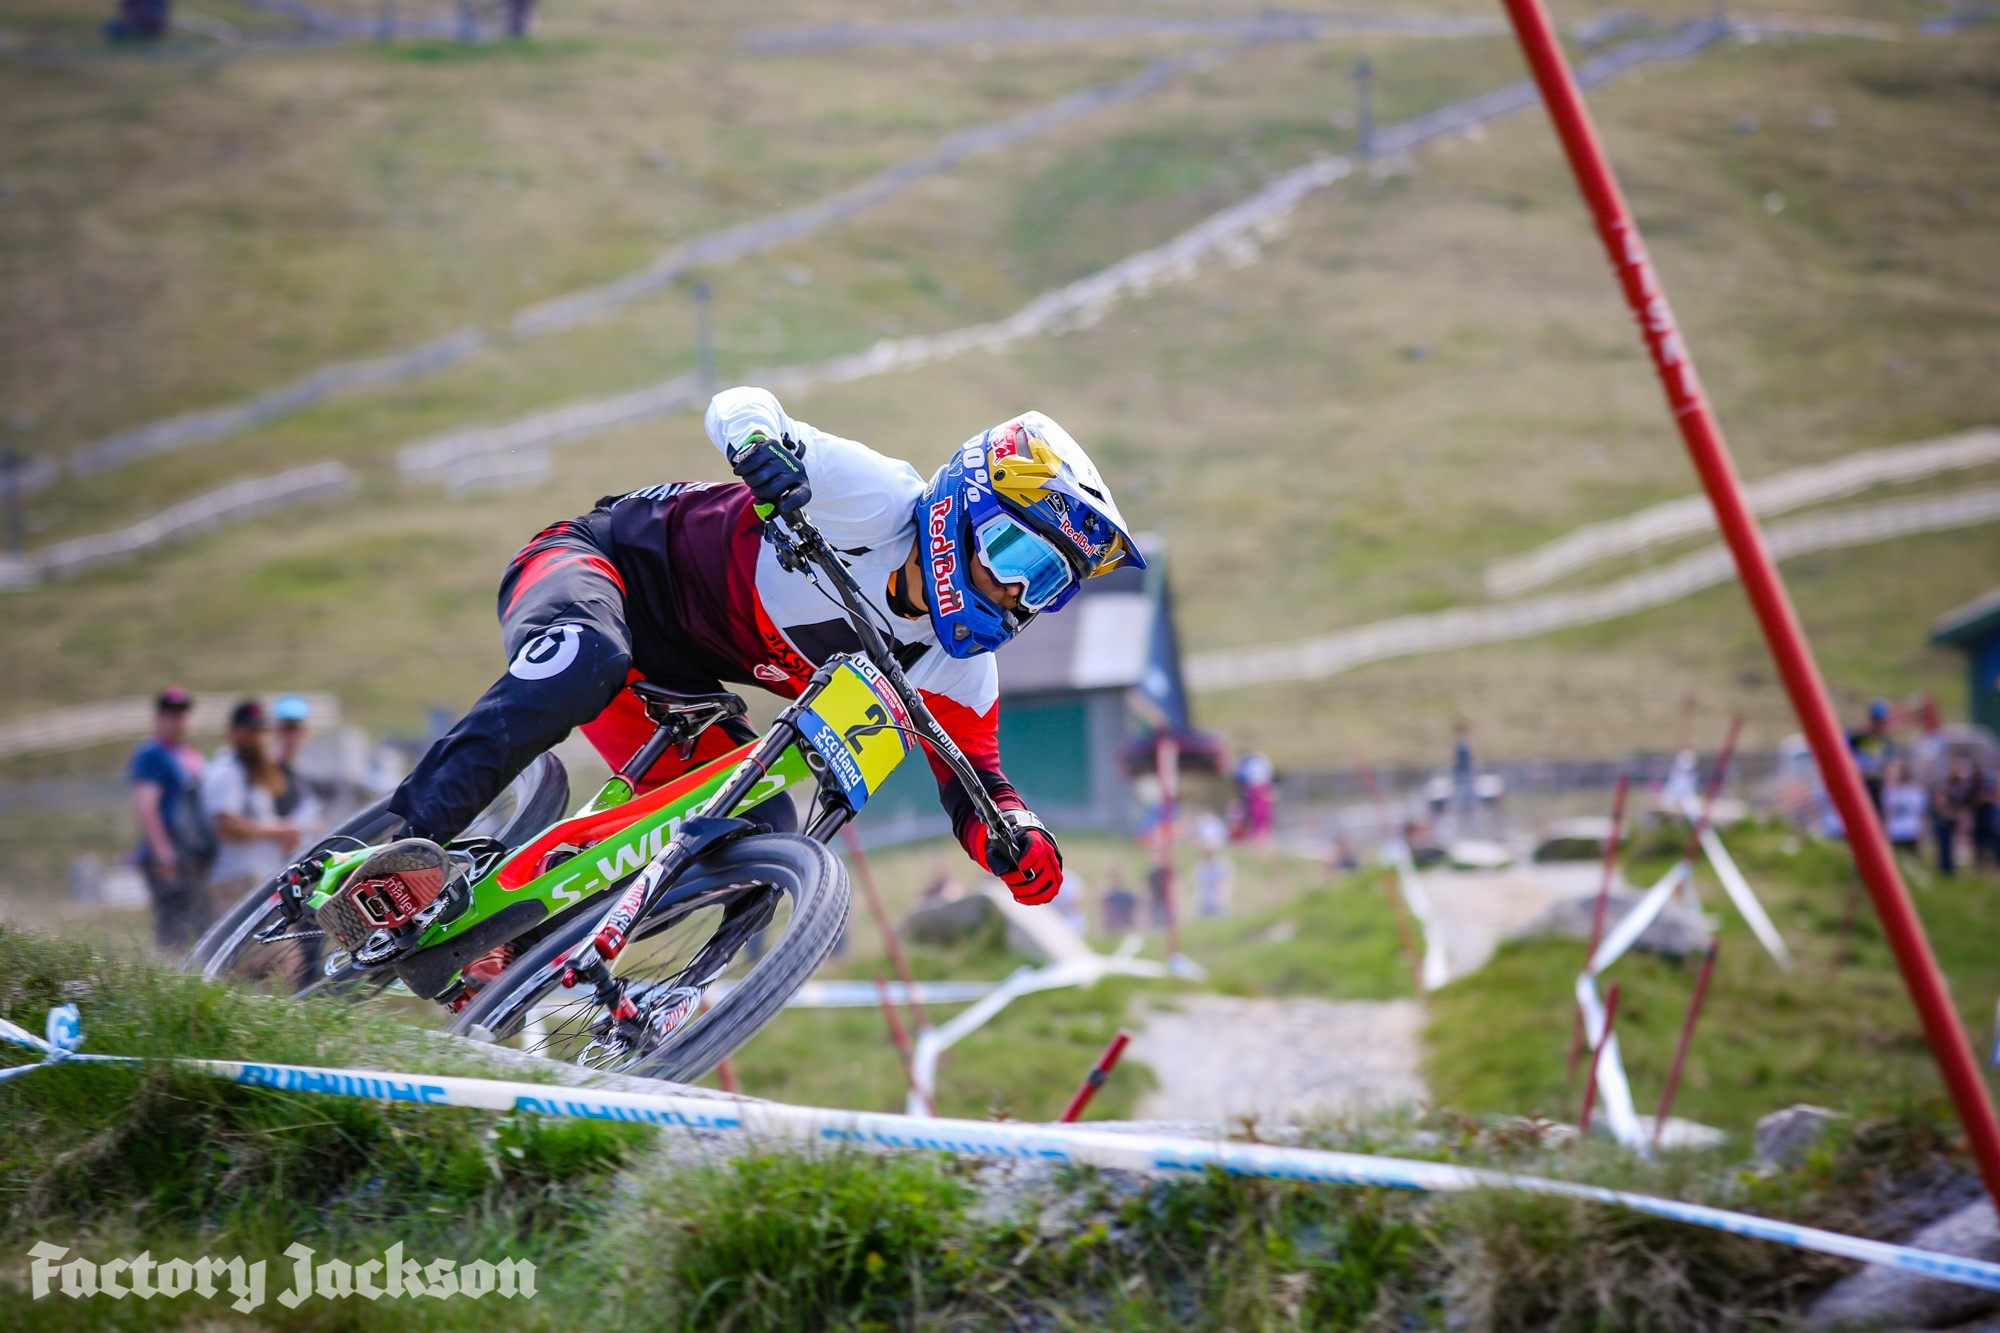 Fort William 2016 - Finn Illes on track